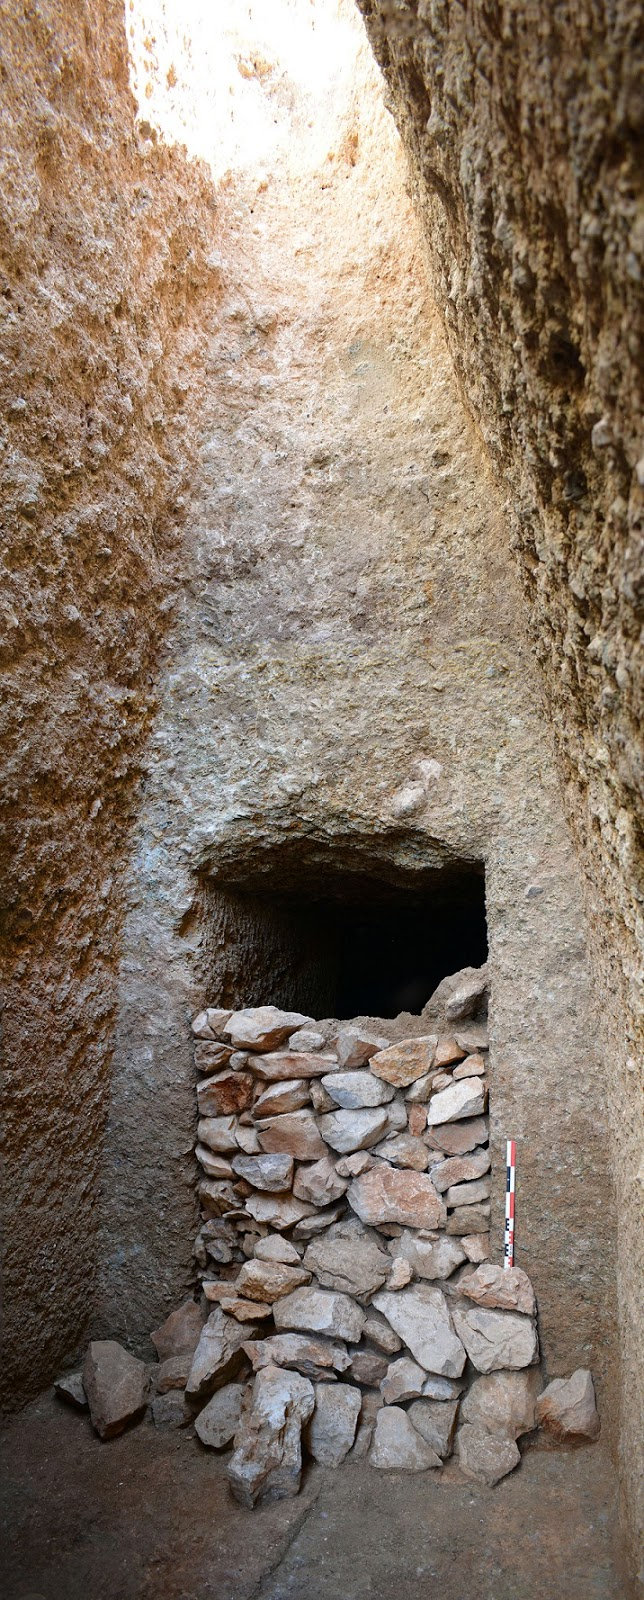 Monumental Mycenaean tomb discovered near Orchomenos in Boeotia, central Greece